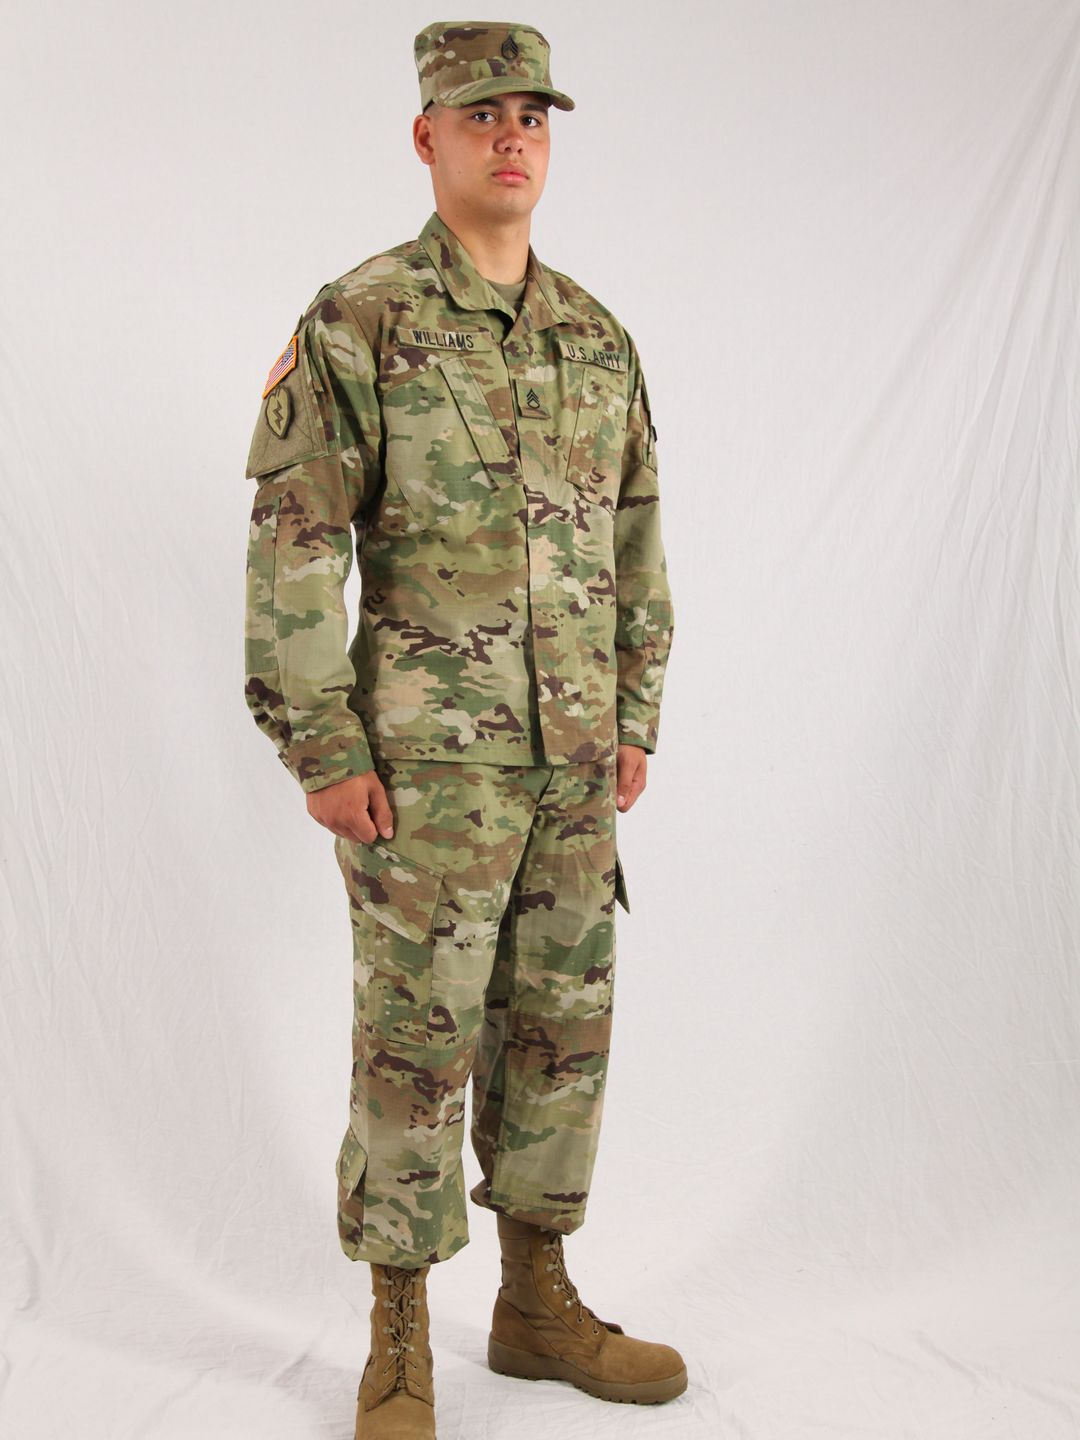 Army Combat Uniform - Wikipedia